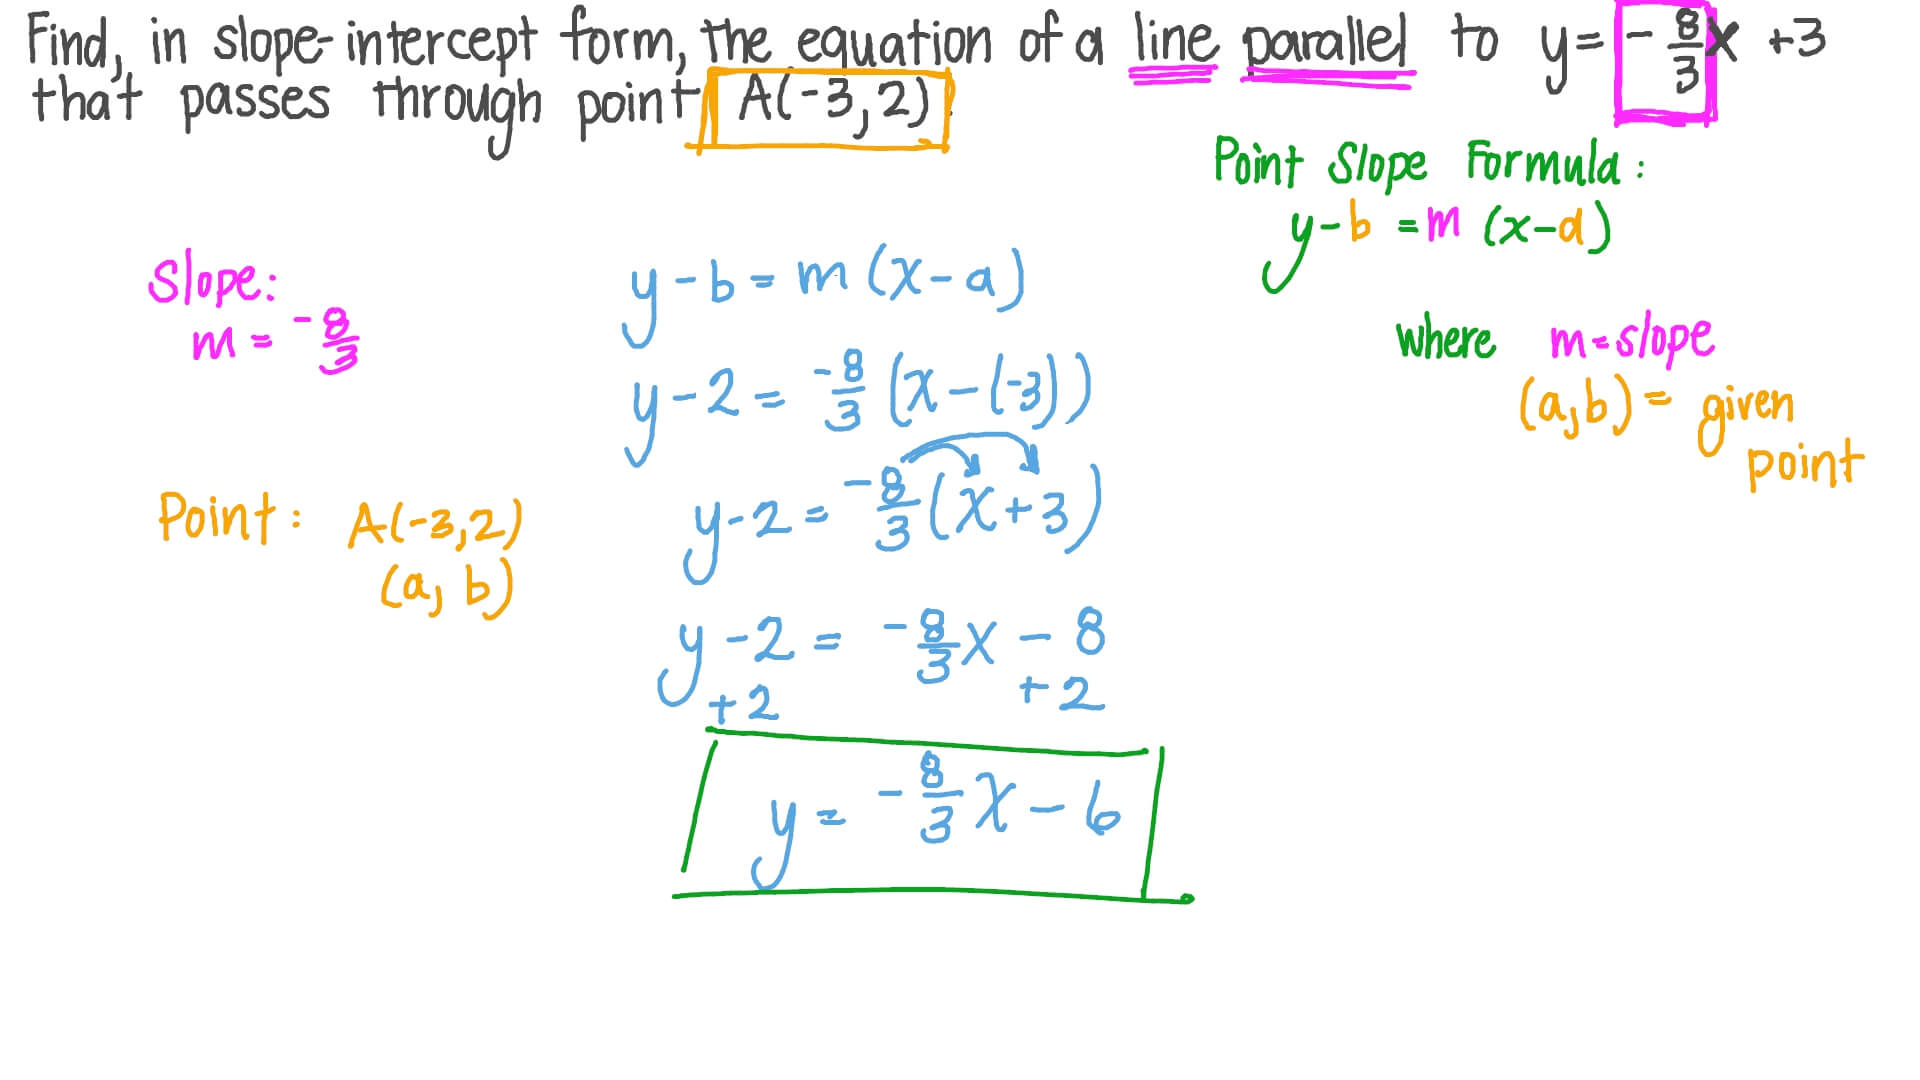 slope intercept form from points  Finding in Slope-Intercept Form the Equation of Parallel Lines